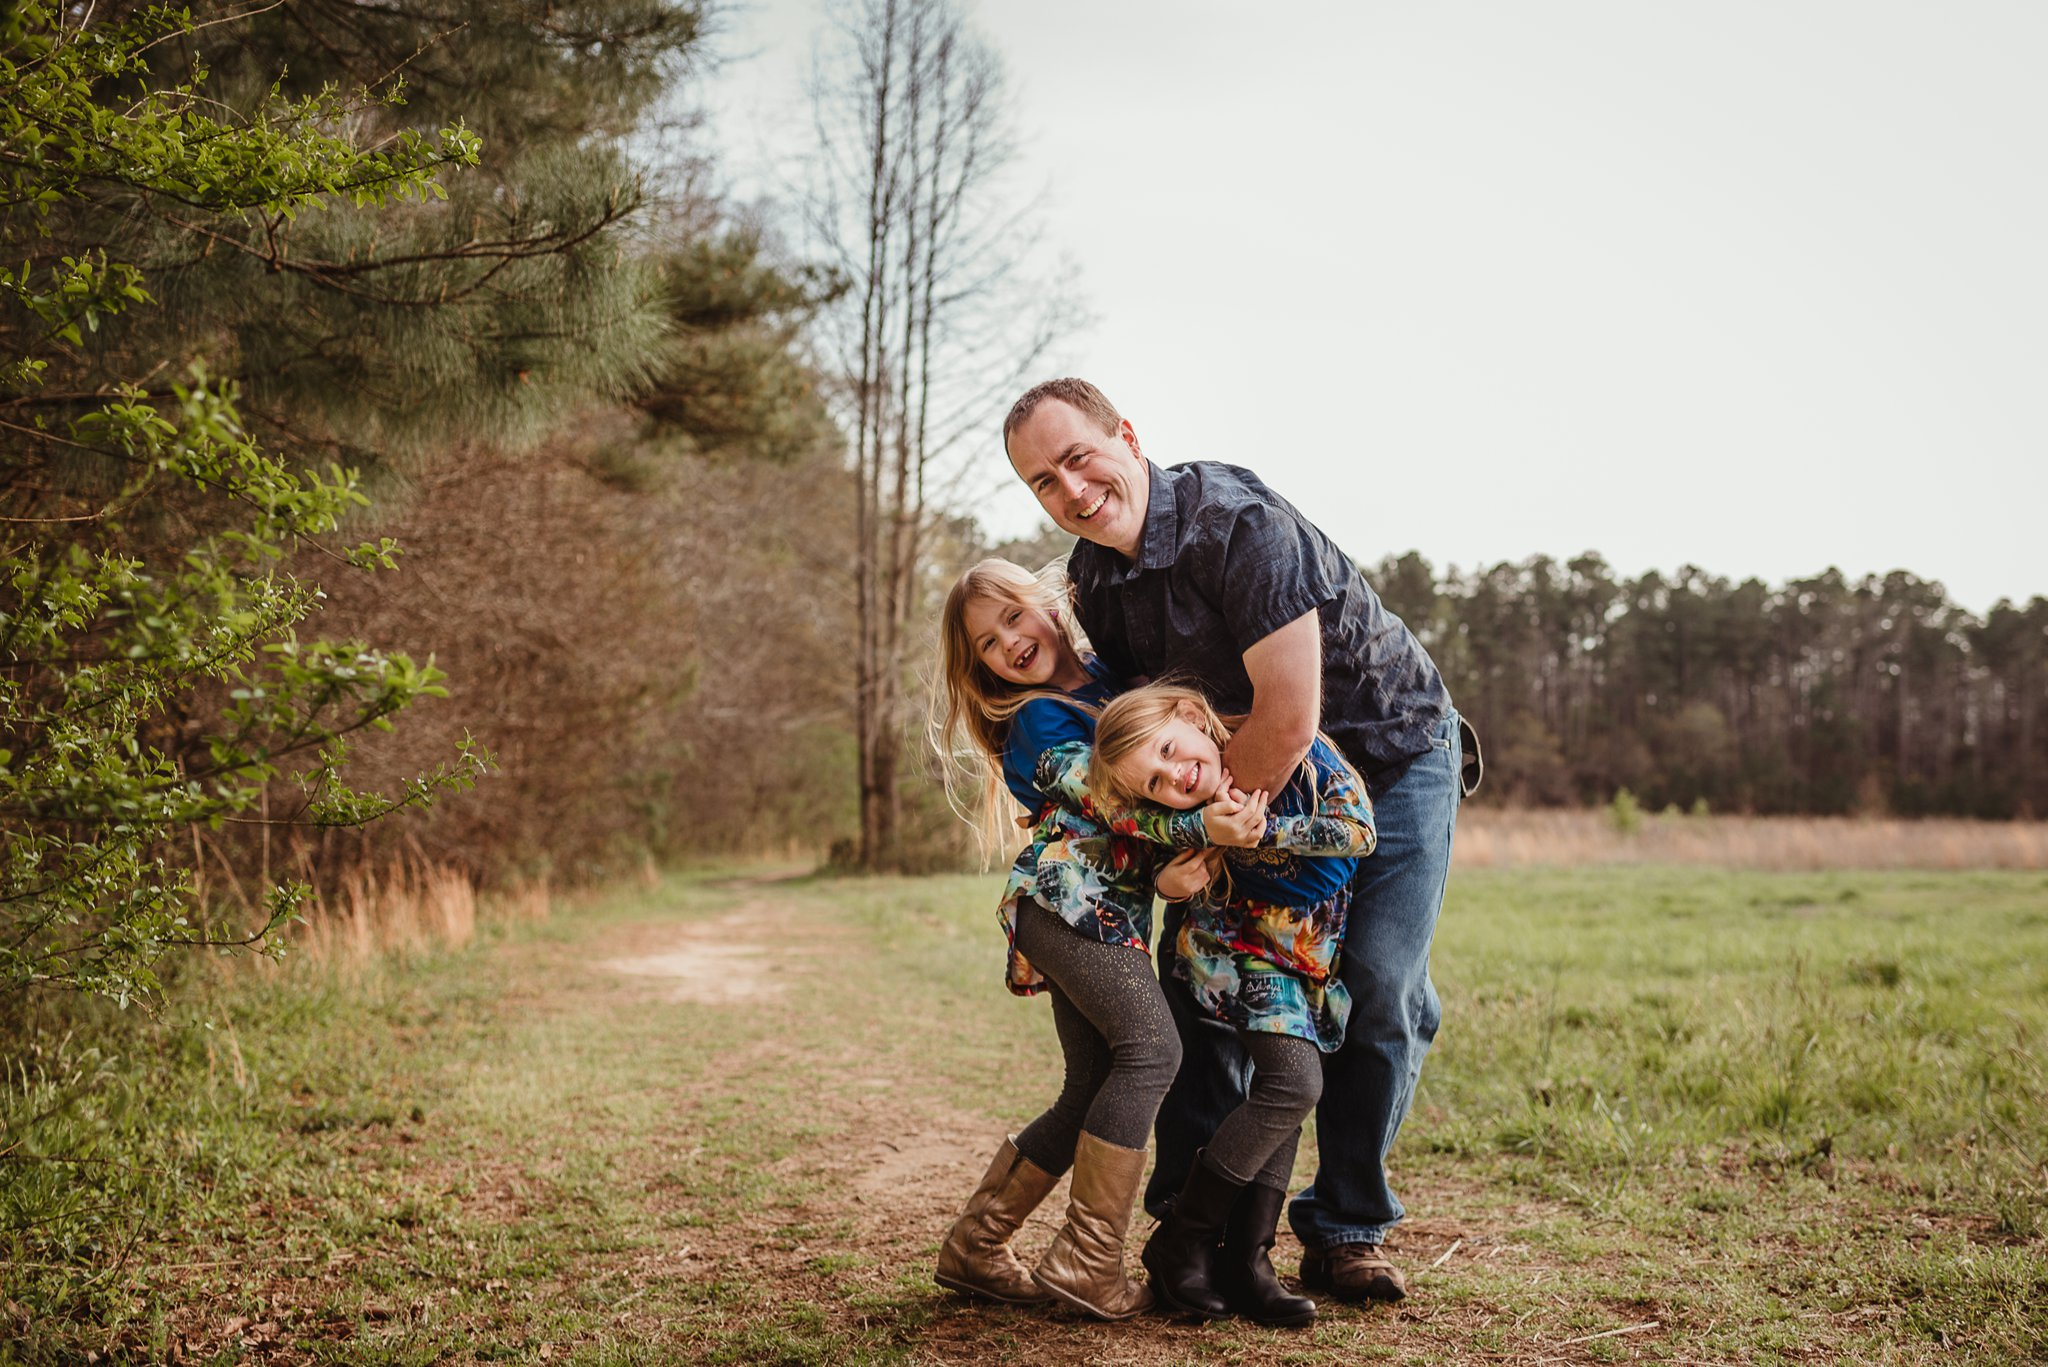 The daughters snuggle with their dad during their family photo session with Rose Trail Images in Wake Forest, North Carolina.